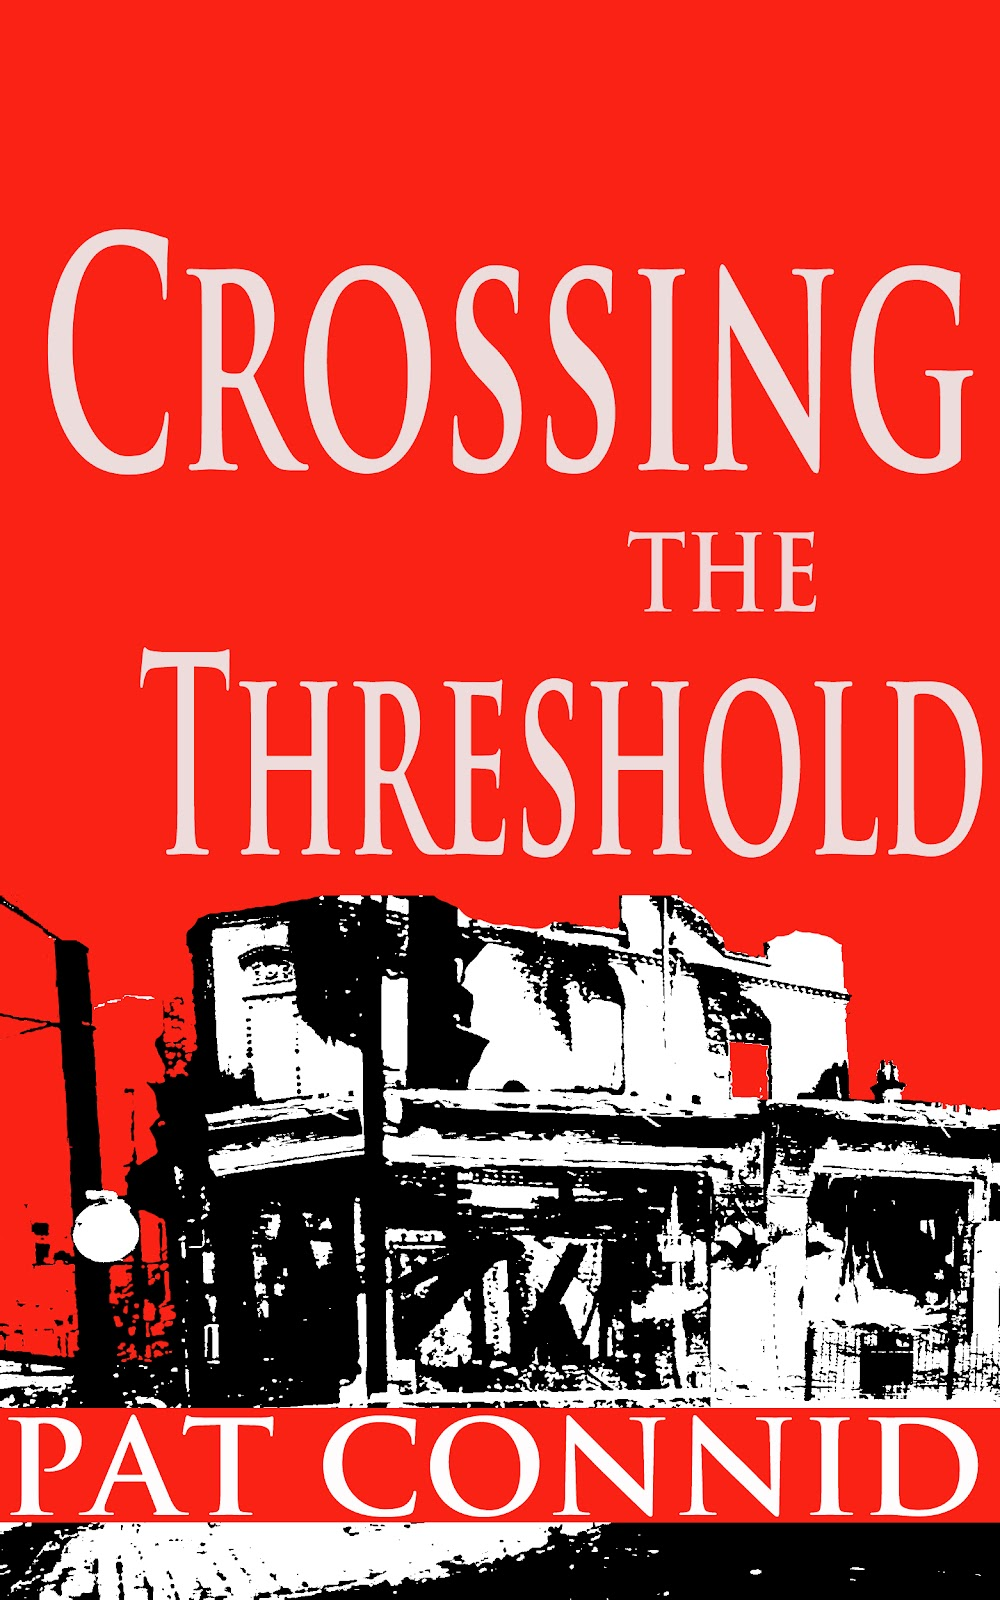 crossing the threshold essay Crossing the threshold: essays and criticism - kindle edition by peter wuteh vakunta download it once and read it on your kindle device, pc, phones or tablets use.